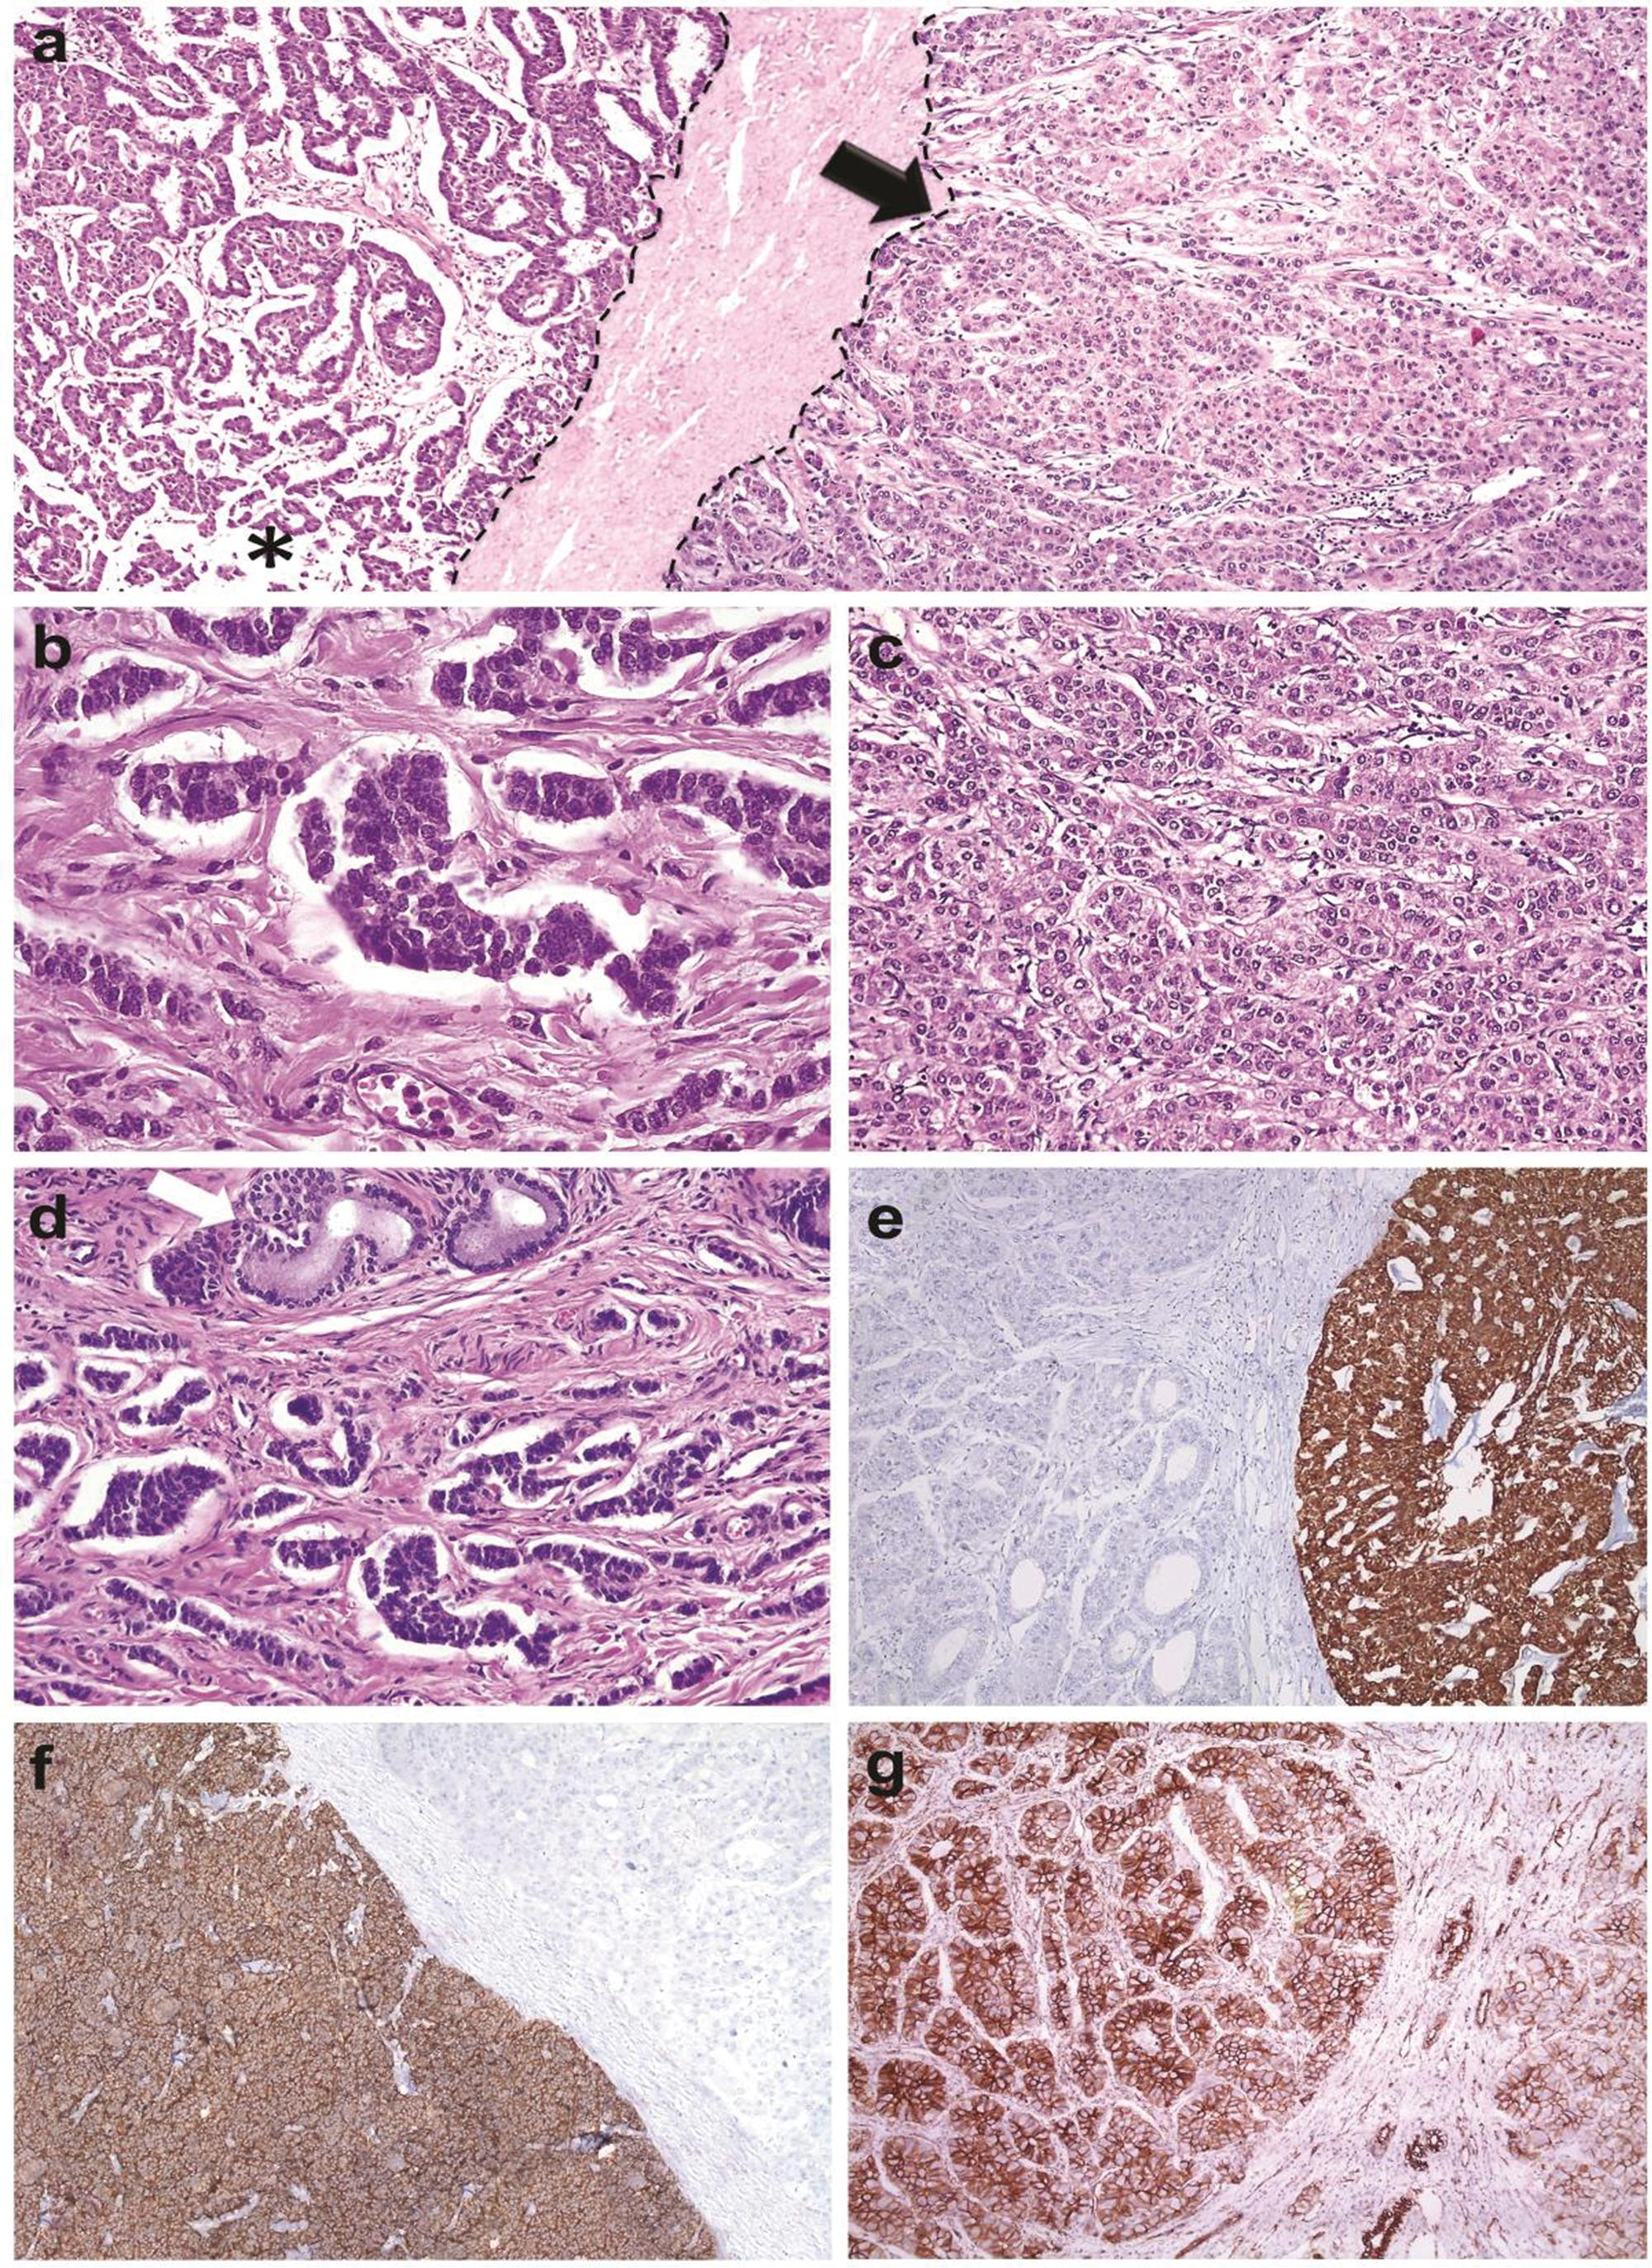 <bold>a:</bold> The two different components are separated by a fibrous tissue (tumor margins are highlighted by dotted lines). Hepatocellular carcinoma is indicated by the arrow; asterisk indicates NEC areas. <bold>b:</bold> Higher magnification of endocrine tumor. <bold>c:</bold> Higher magnification of HCC. <bold>d:</bold> NEC cells are closely located to near the ductus. <bold>e:</bold> NEC stains with chromogranin, but HCC remains negative. <bold>f:</bold> Hep-par 1 expression detected in HCC, but NEC is negative. <bold>g:</bold> Strong membrane staining with β-catenin in HCC.